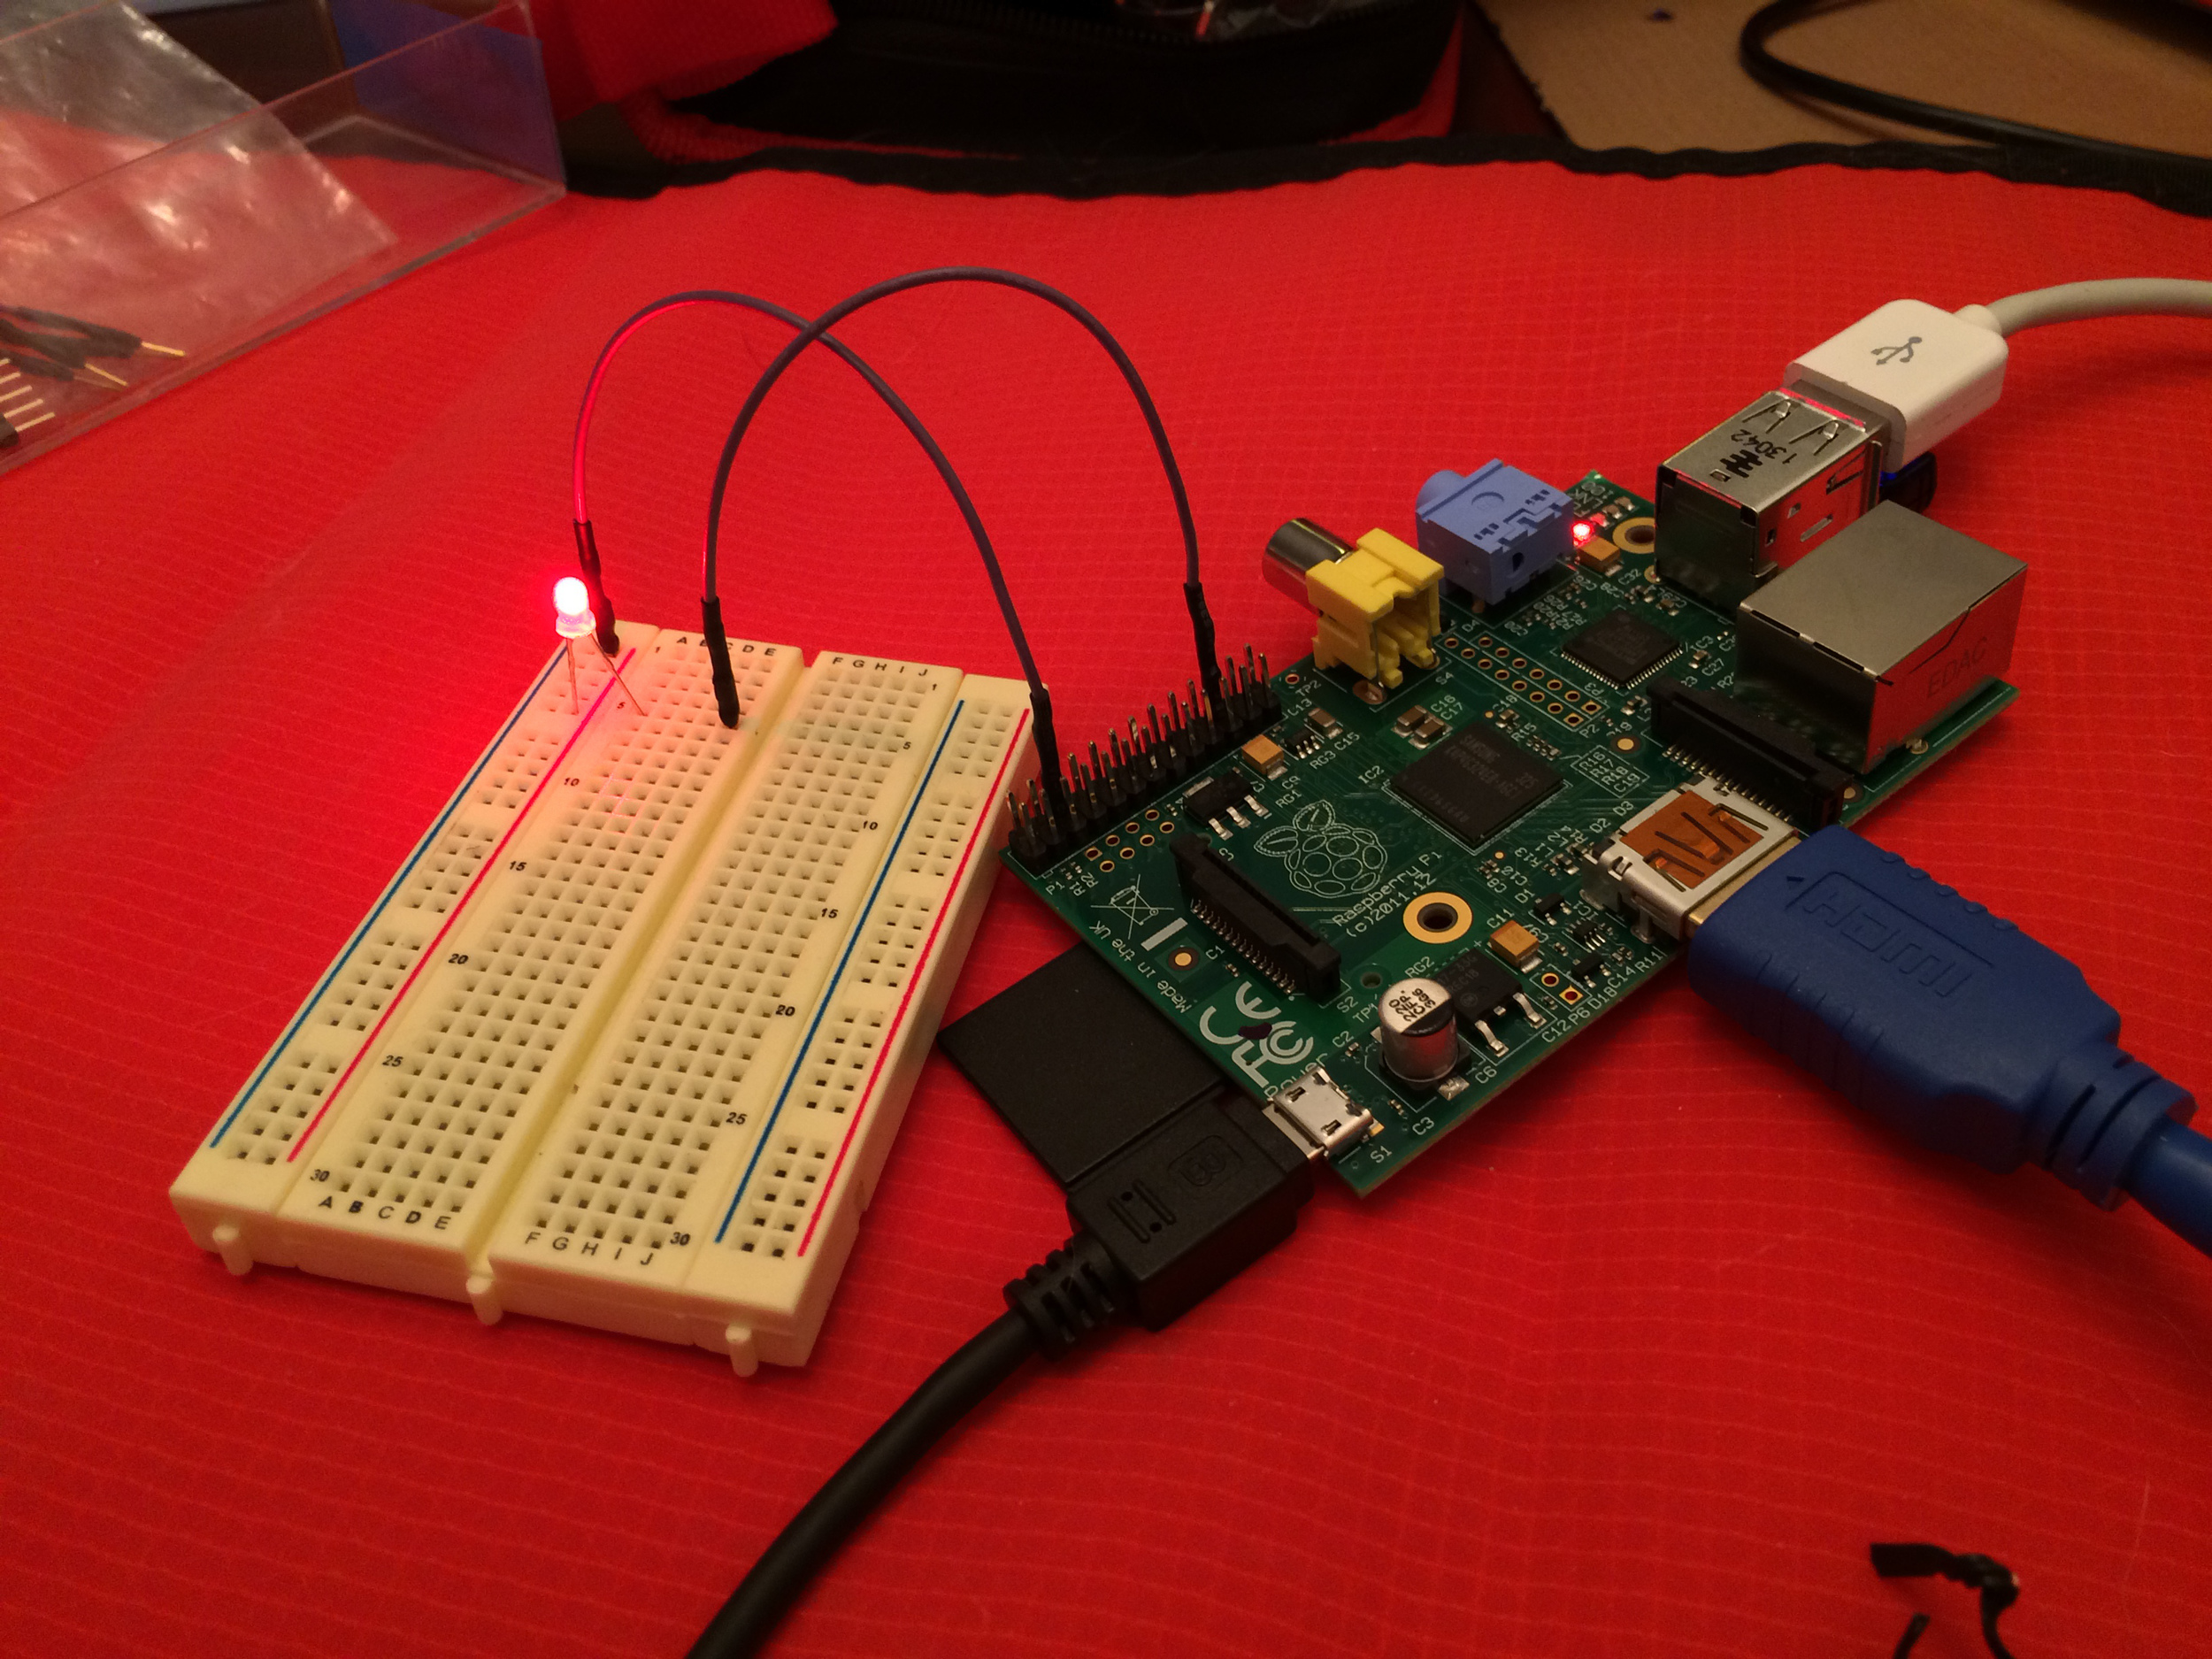 Raspberry Pi controlling an LED with Linux command line